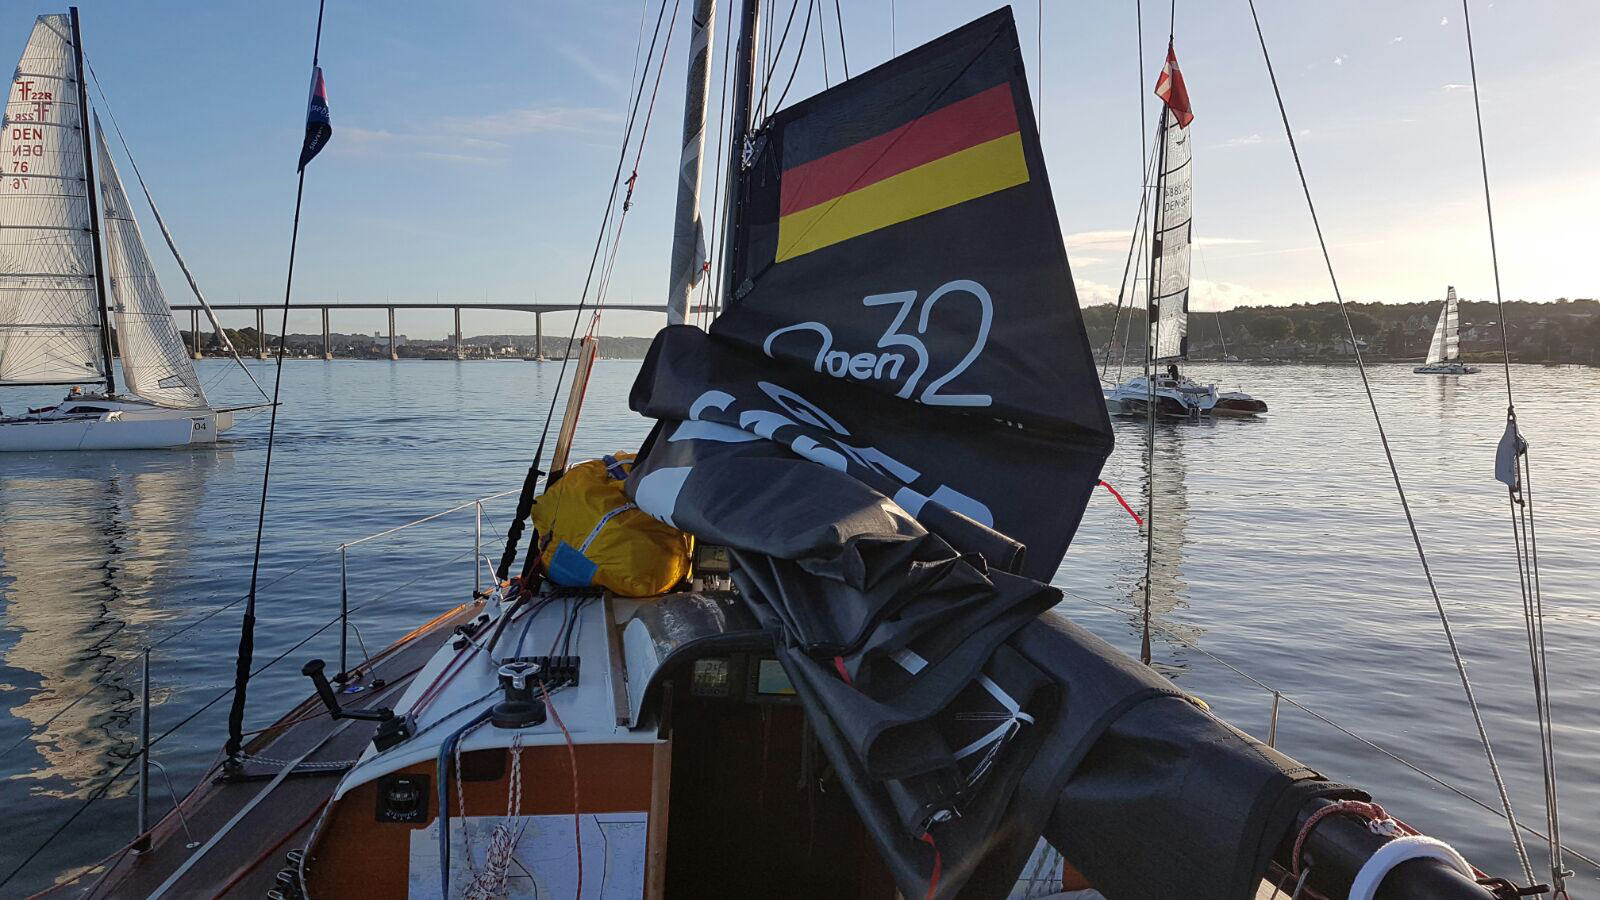 The Open 32 BLACK MAGGY, sailed a fantastic race, but could not seal the deal. Her skipper Wolle Heibeck stared at the finish line, under the bridge, for three hours while hanging on his anchor waiting for the wind to return.